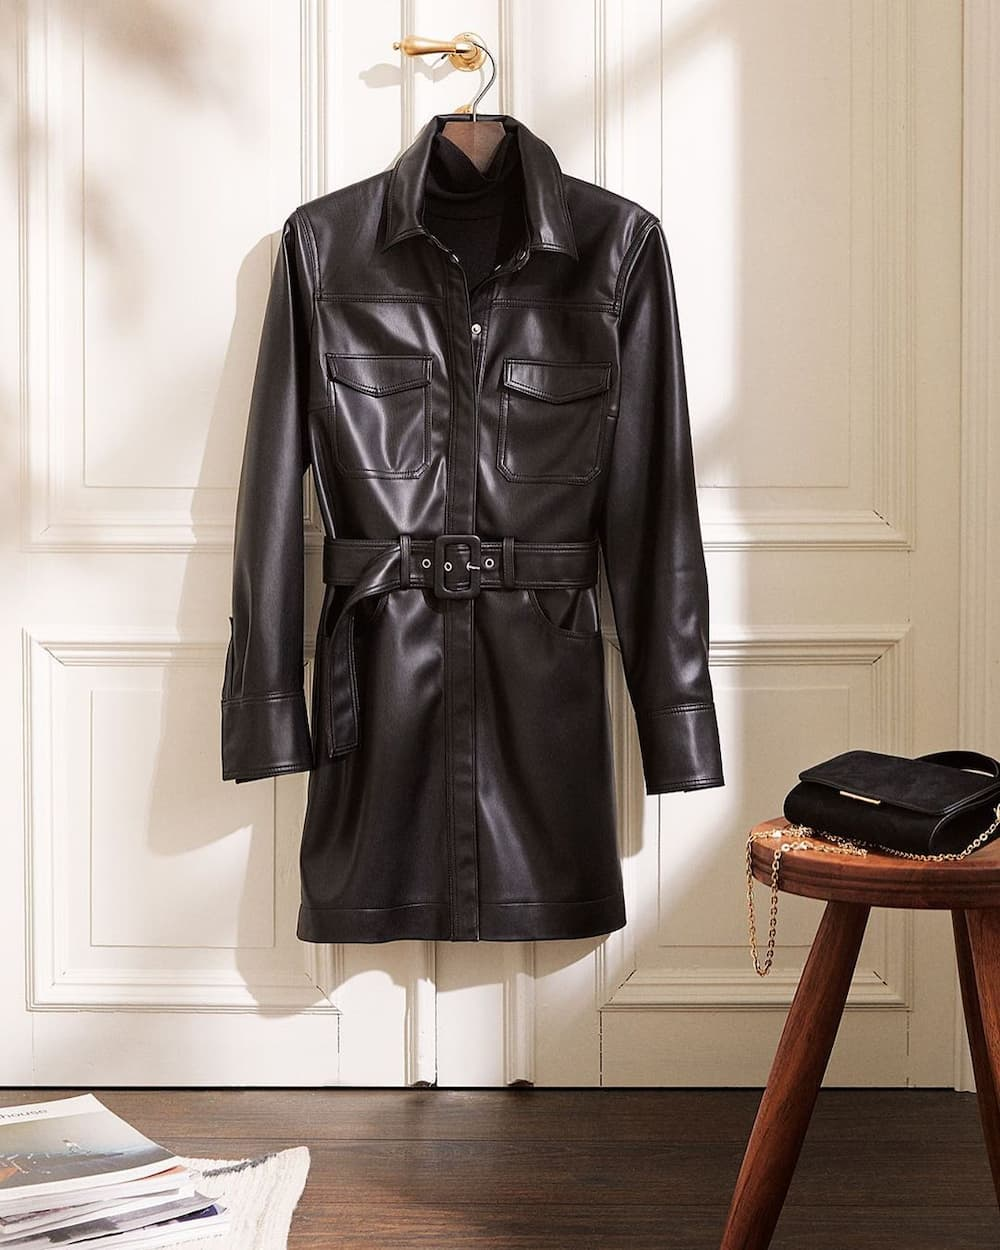 Can I wear my leather jacket in the rain?